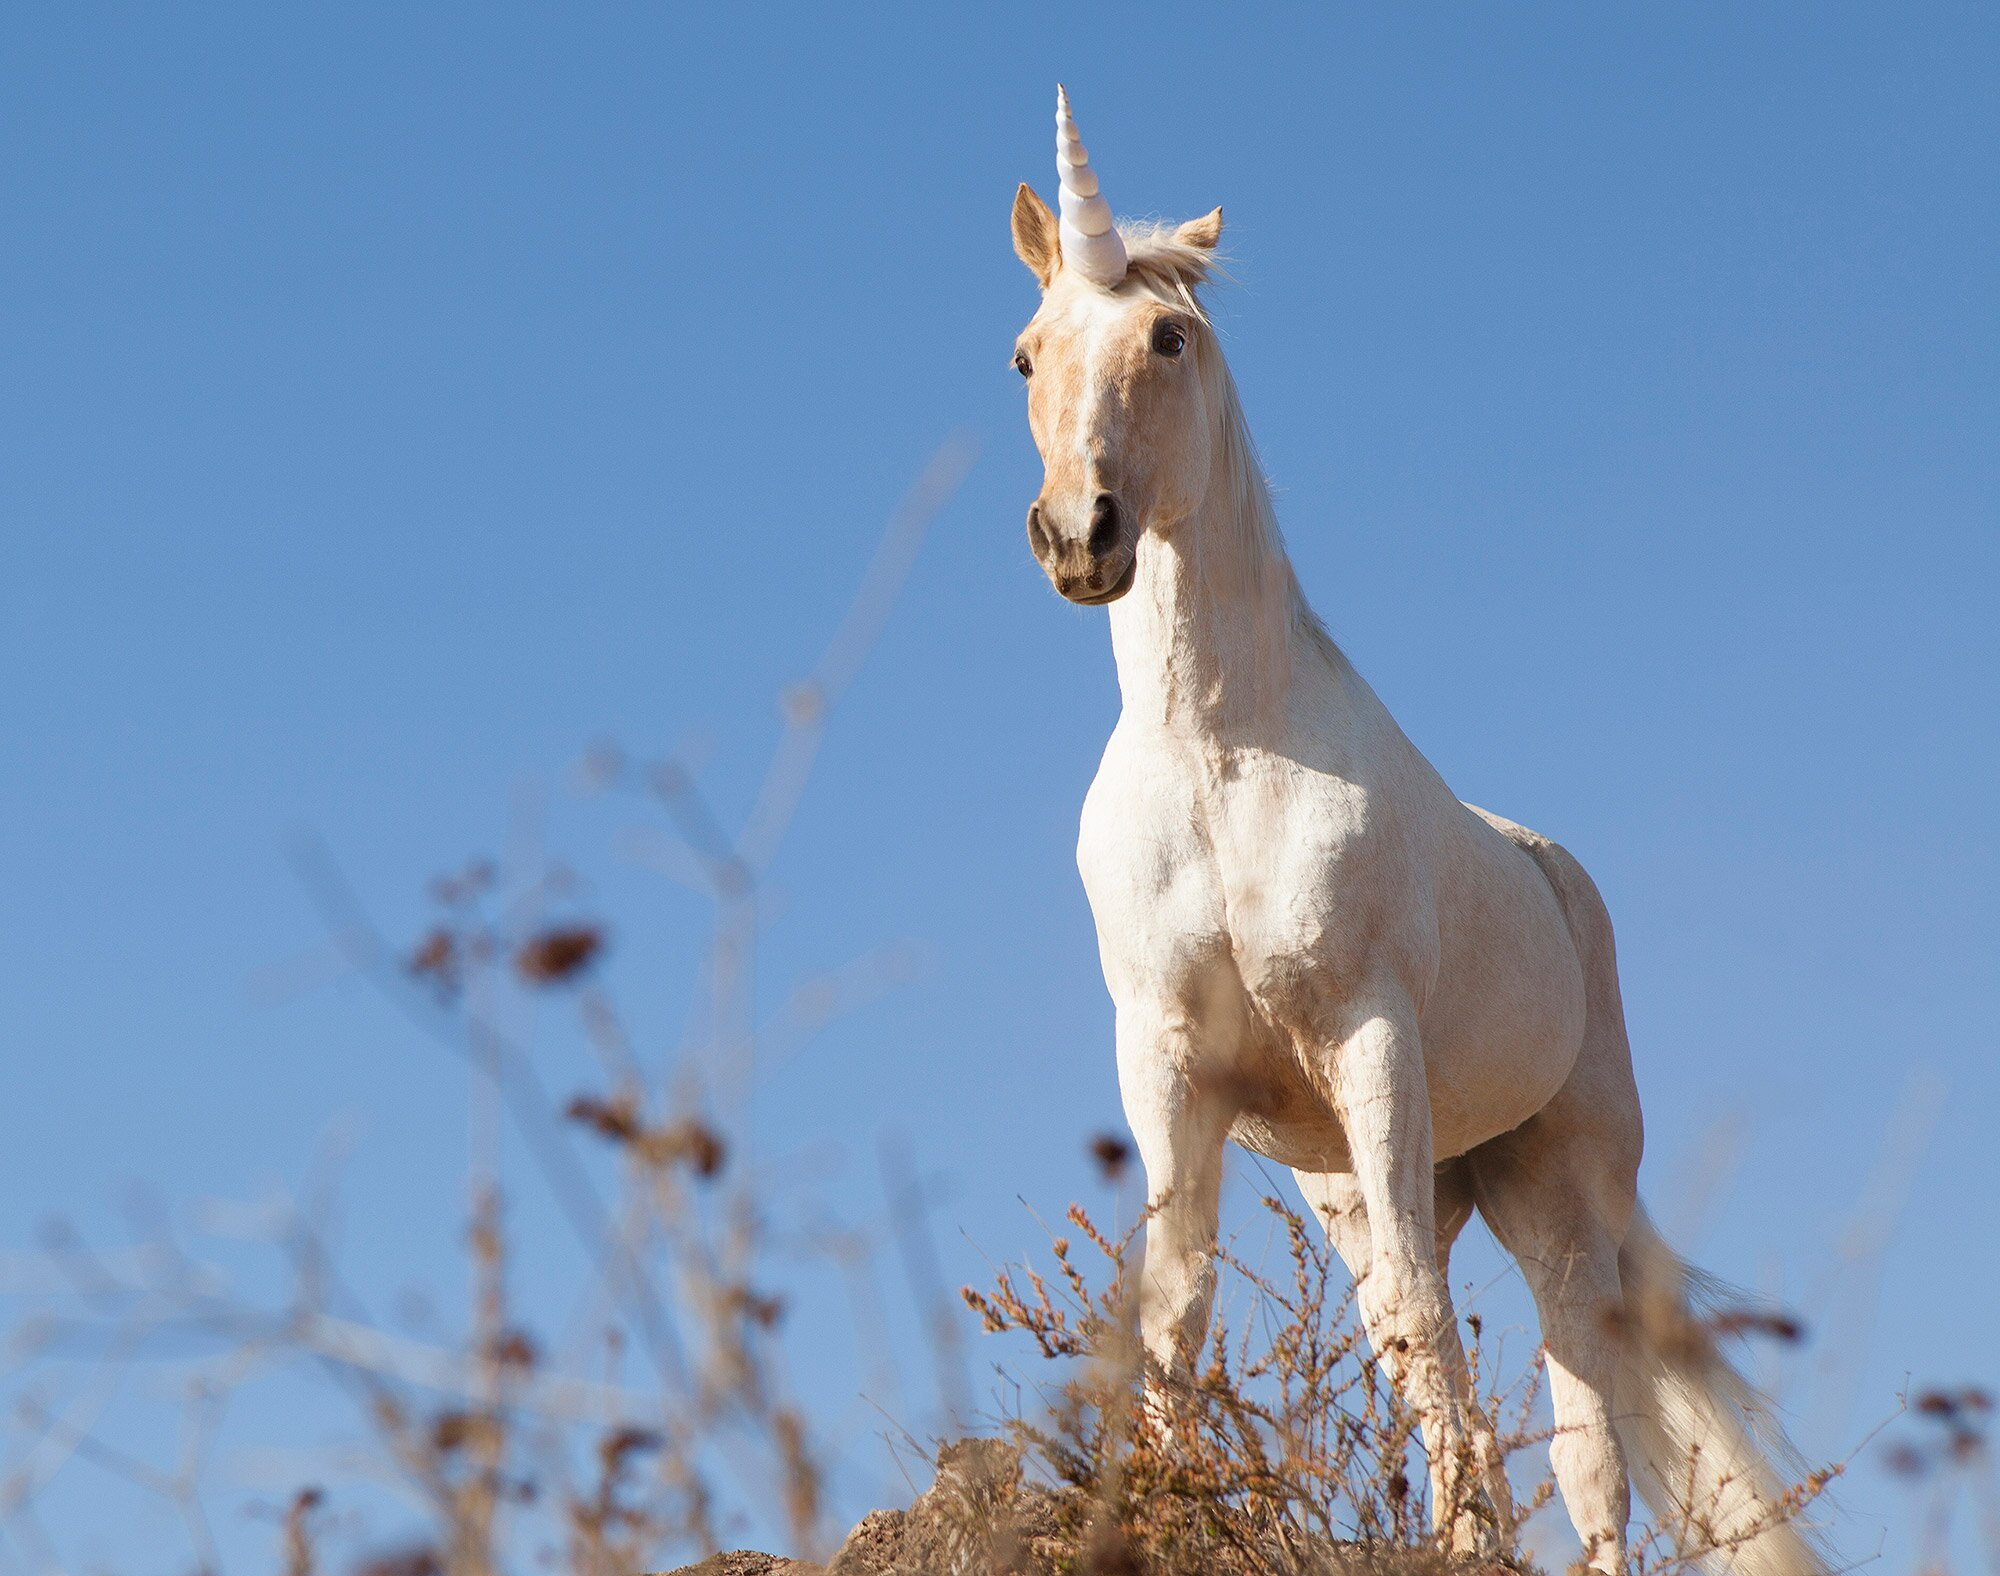 Unicorns Are Real and Lived with Humans | PEOPLE.com